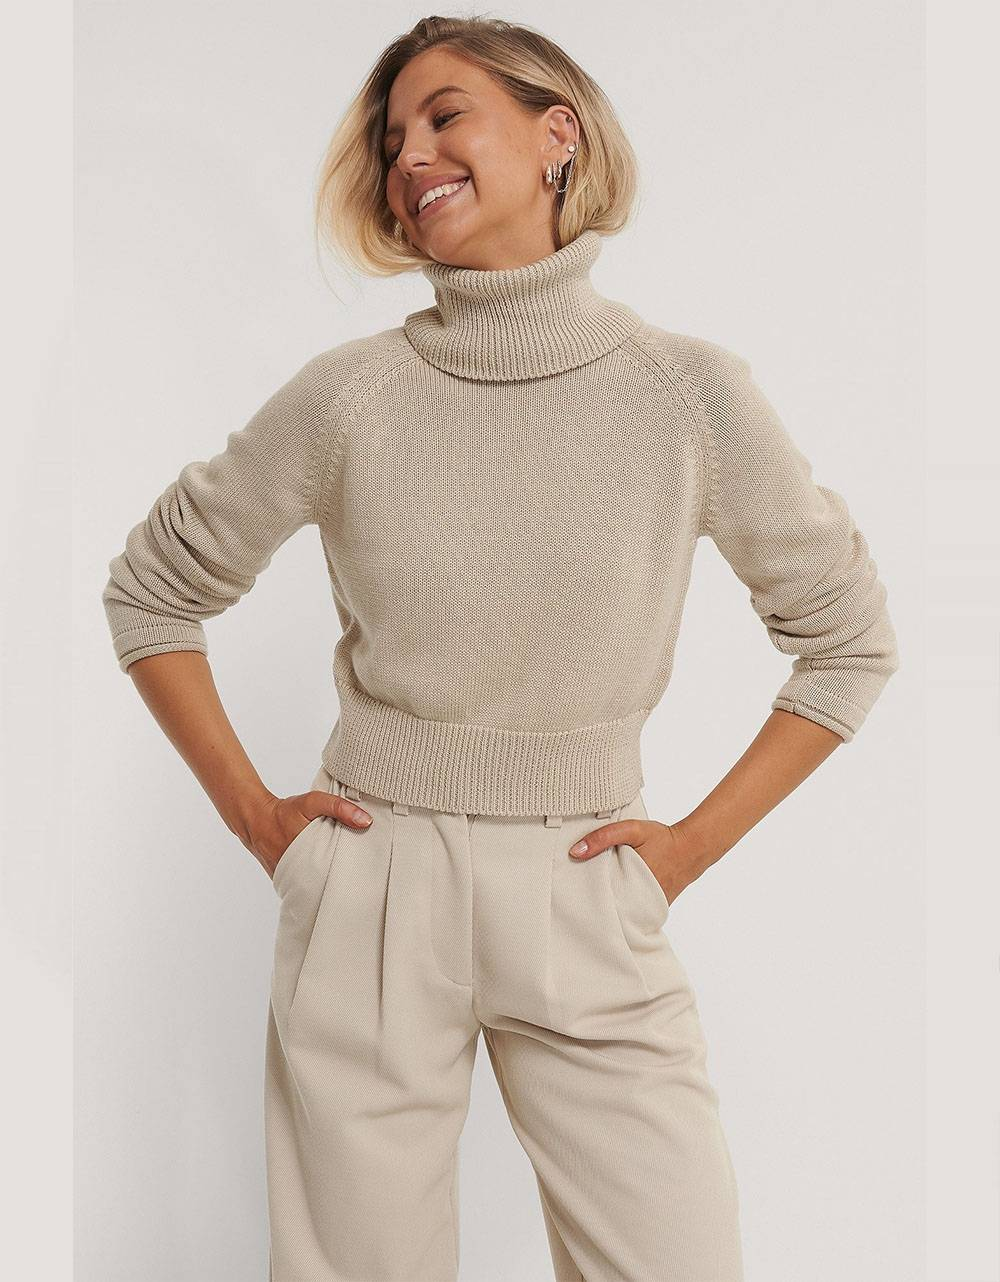 NA-KD high neck knitted sweater - light beige NA-KD Sweater 40,16€